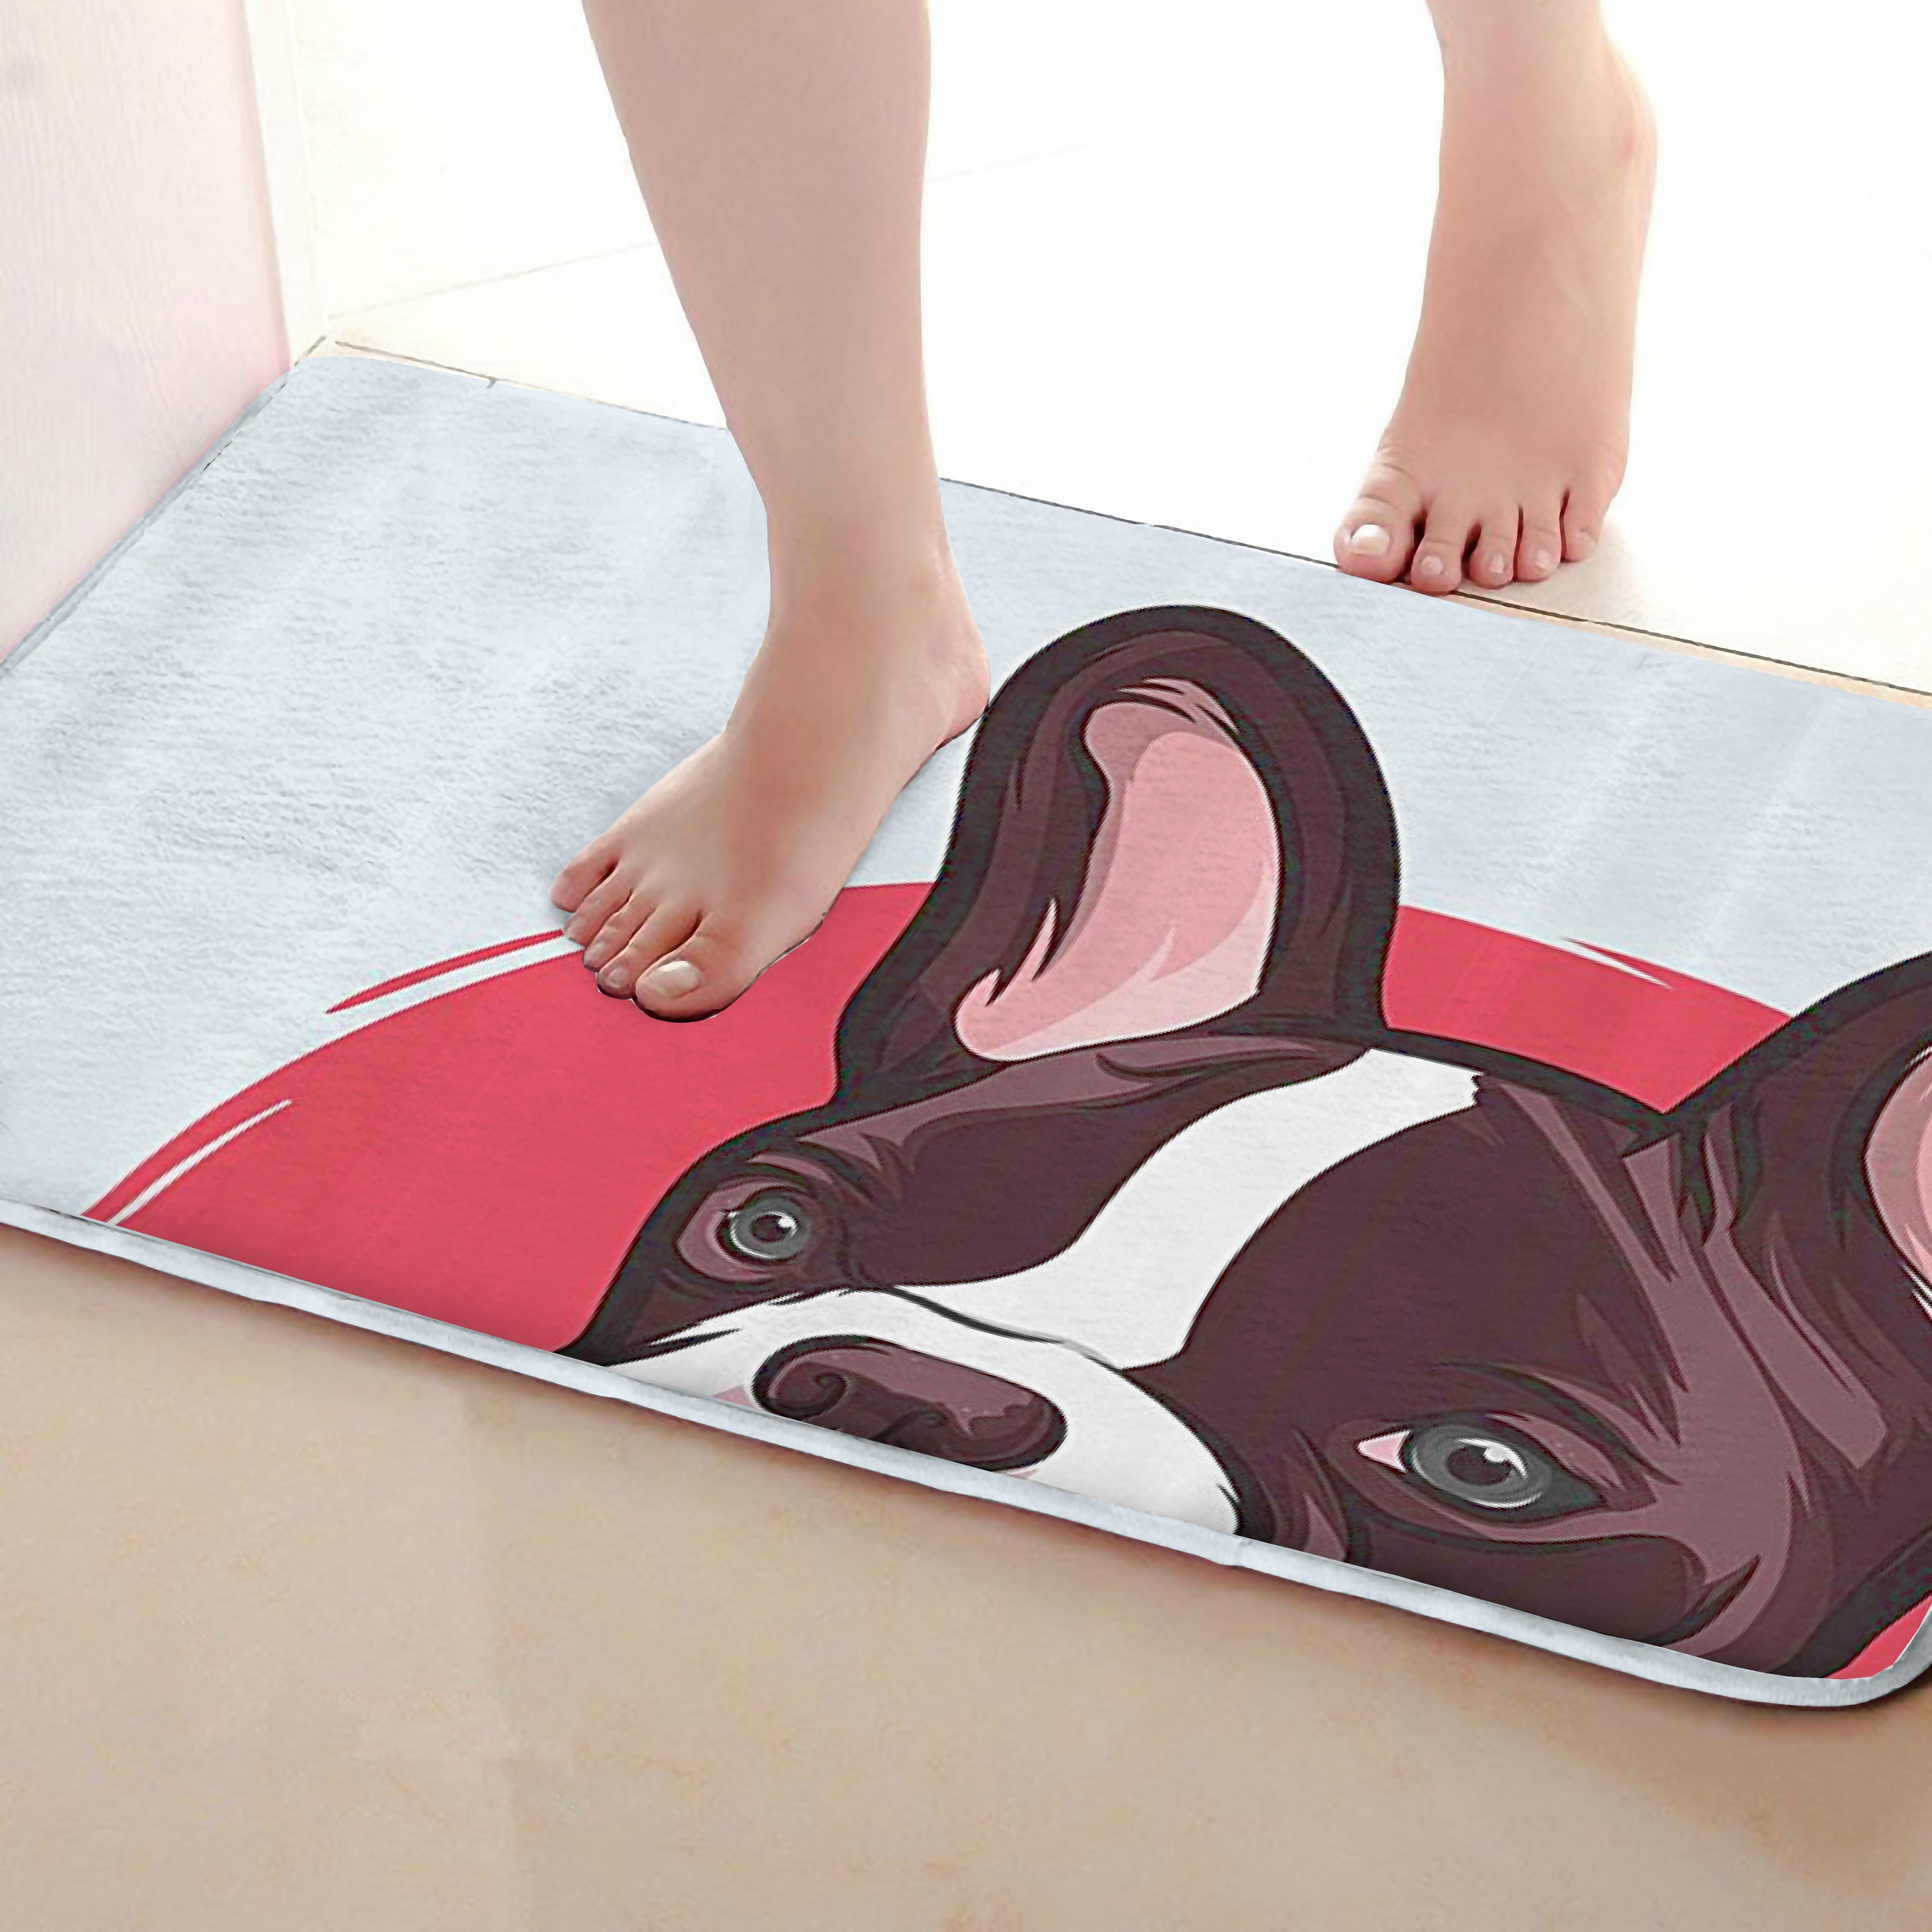 Dog Style Bathroom Mat,Funny Anti Skid Bath Mat,Shower Curtains Accessories,Matching Your Shower Curtain